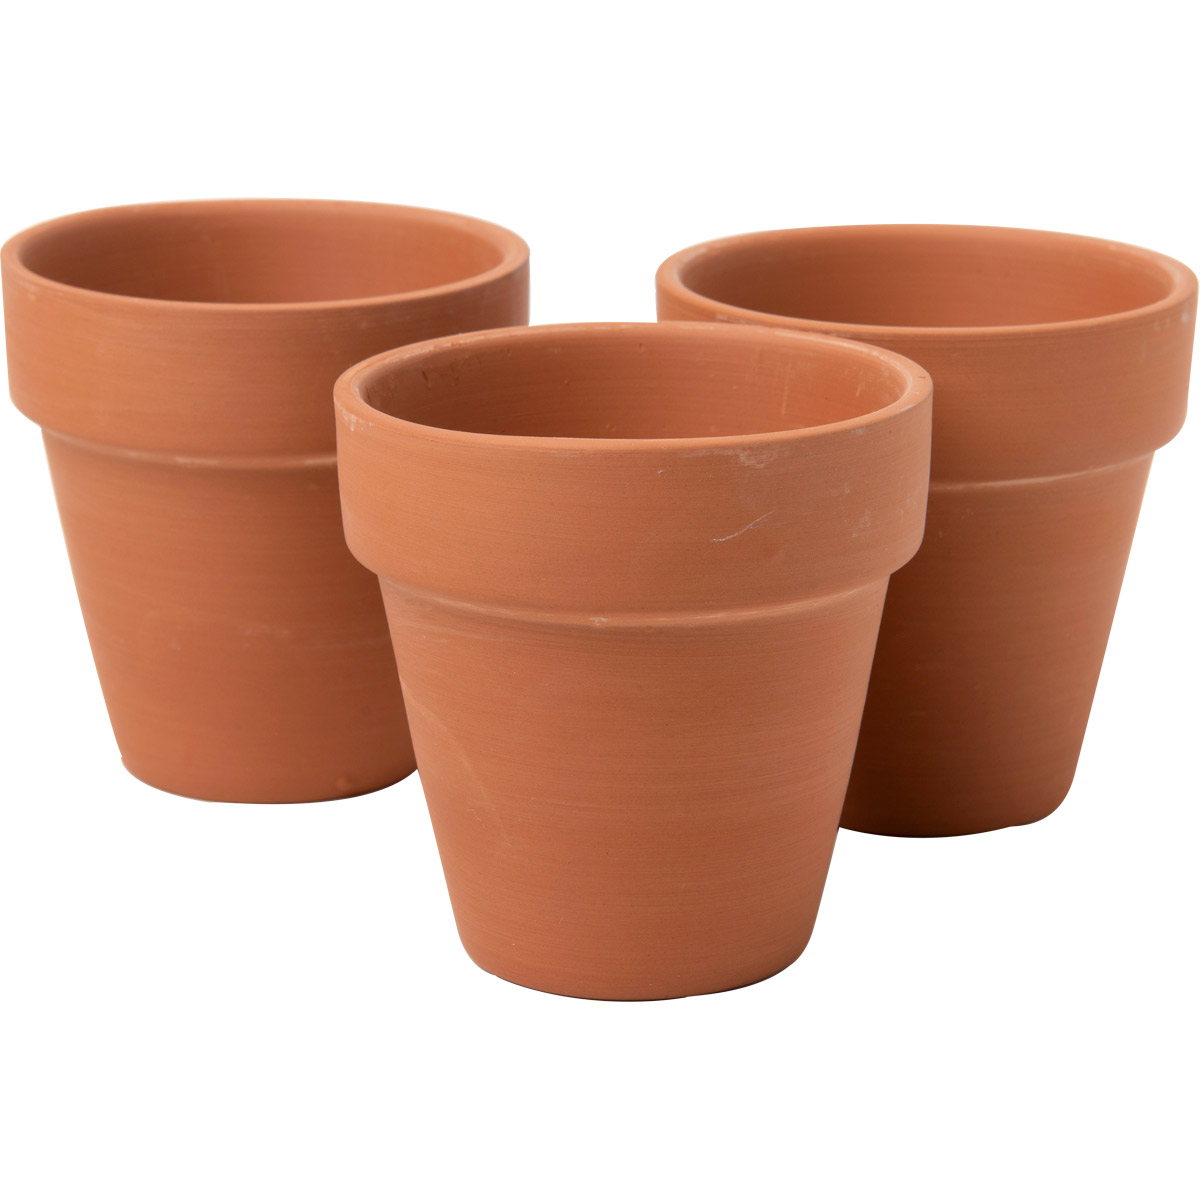 Plaid ® Surfaces - Terracotta Flower Pot, Small, 3 pc.